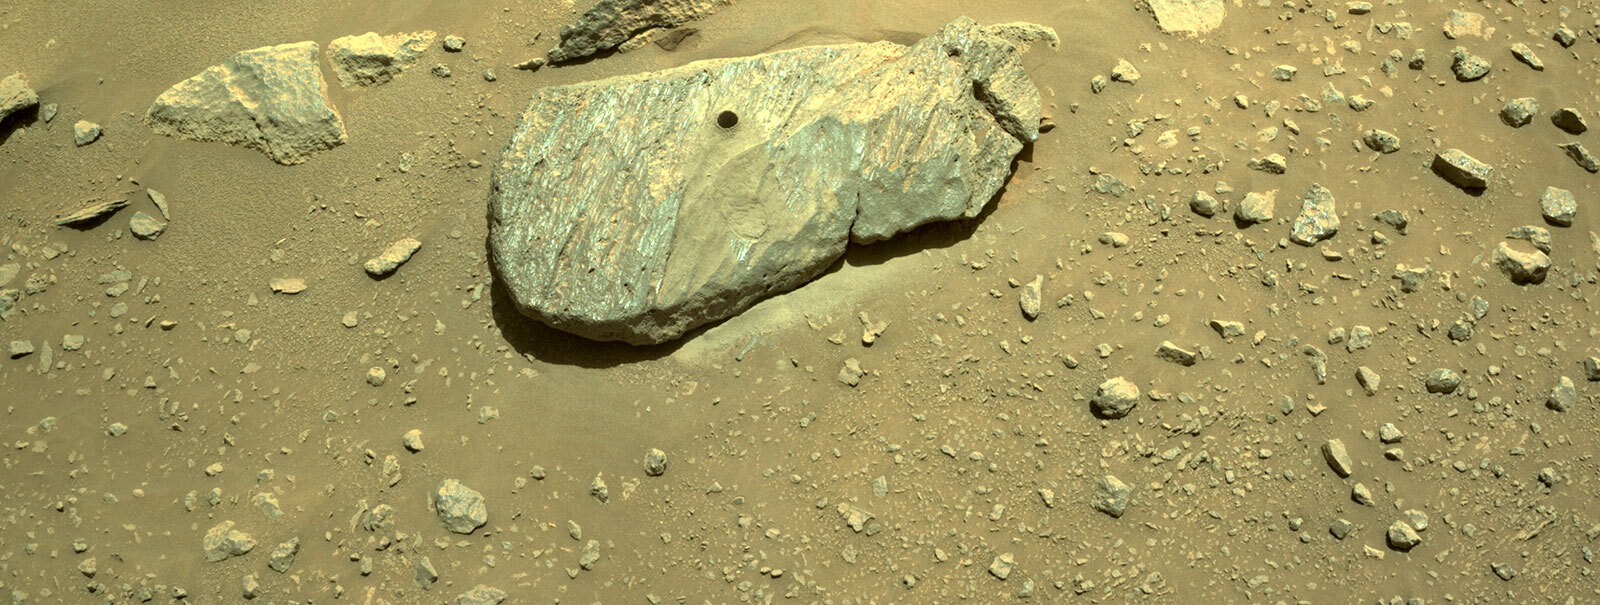 Read article: With First Martian Samples Packed, Perseverance Initiates Remarkable Sample Return Mission